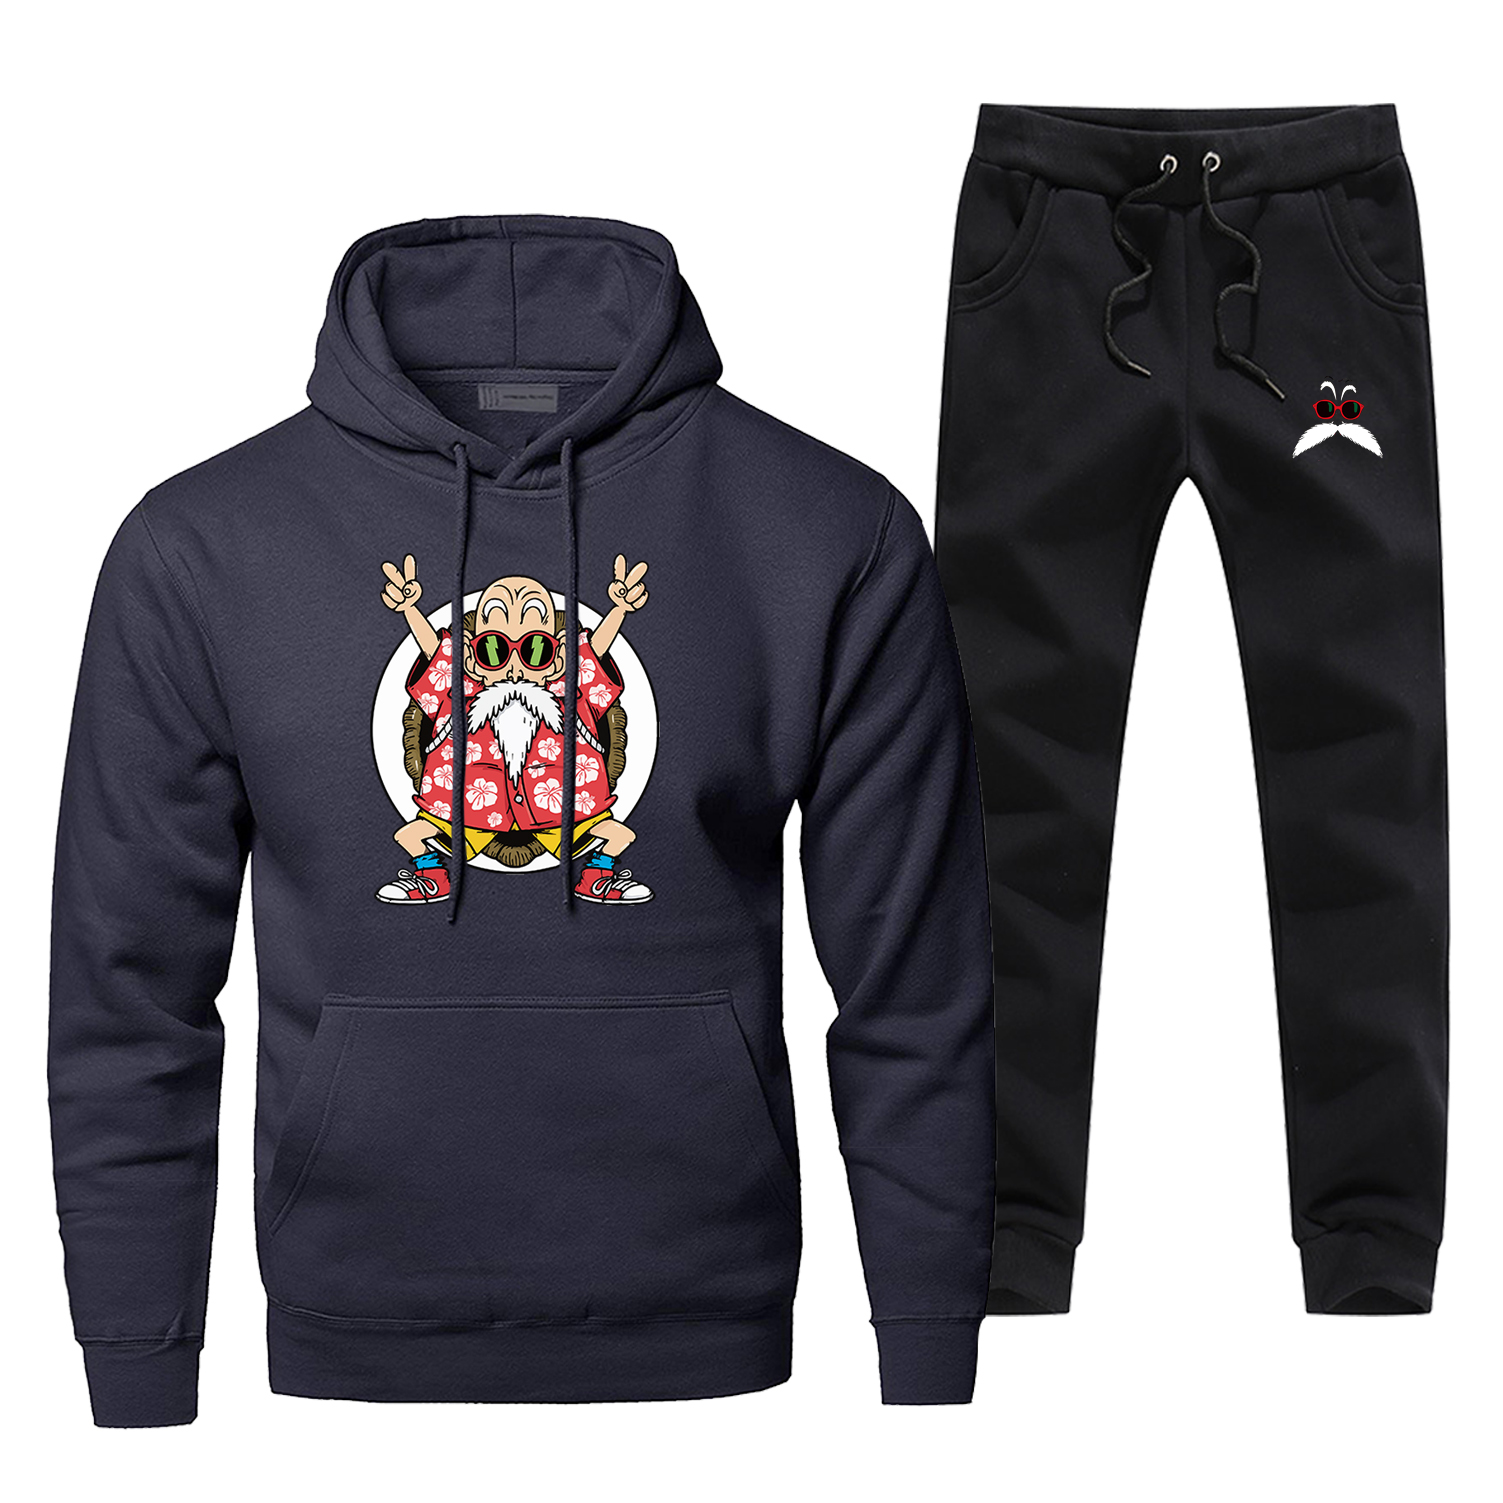 Japan Anime Dragon Ball 2 Piece Set Master Roshi Men's Sets Kame Sennin Harajuku Hoodies Sweatshirts Fleece Pants Chandal Hombre